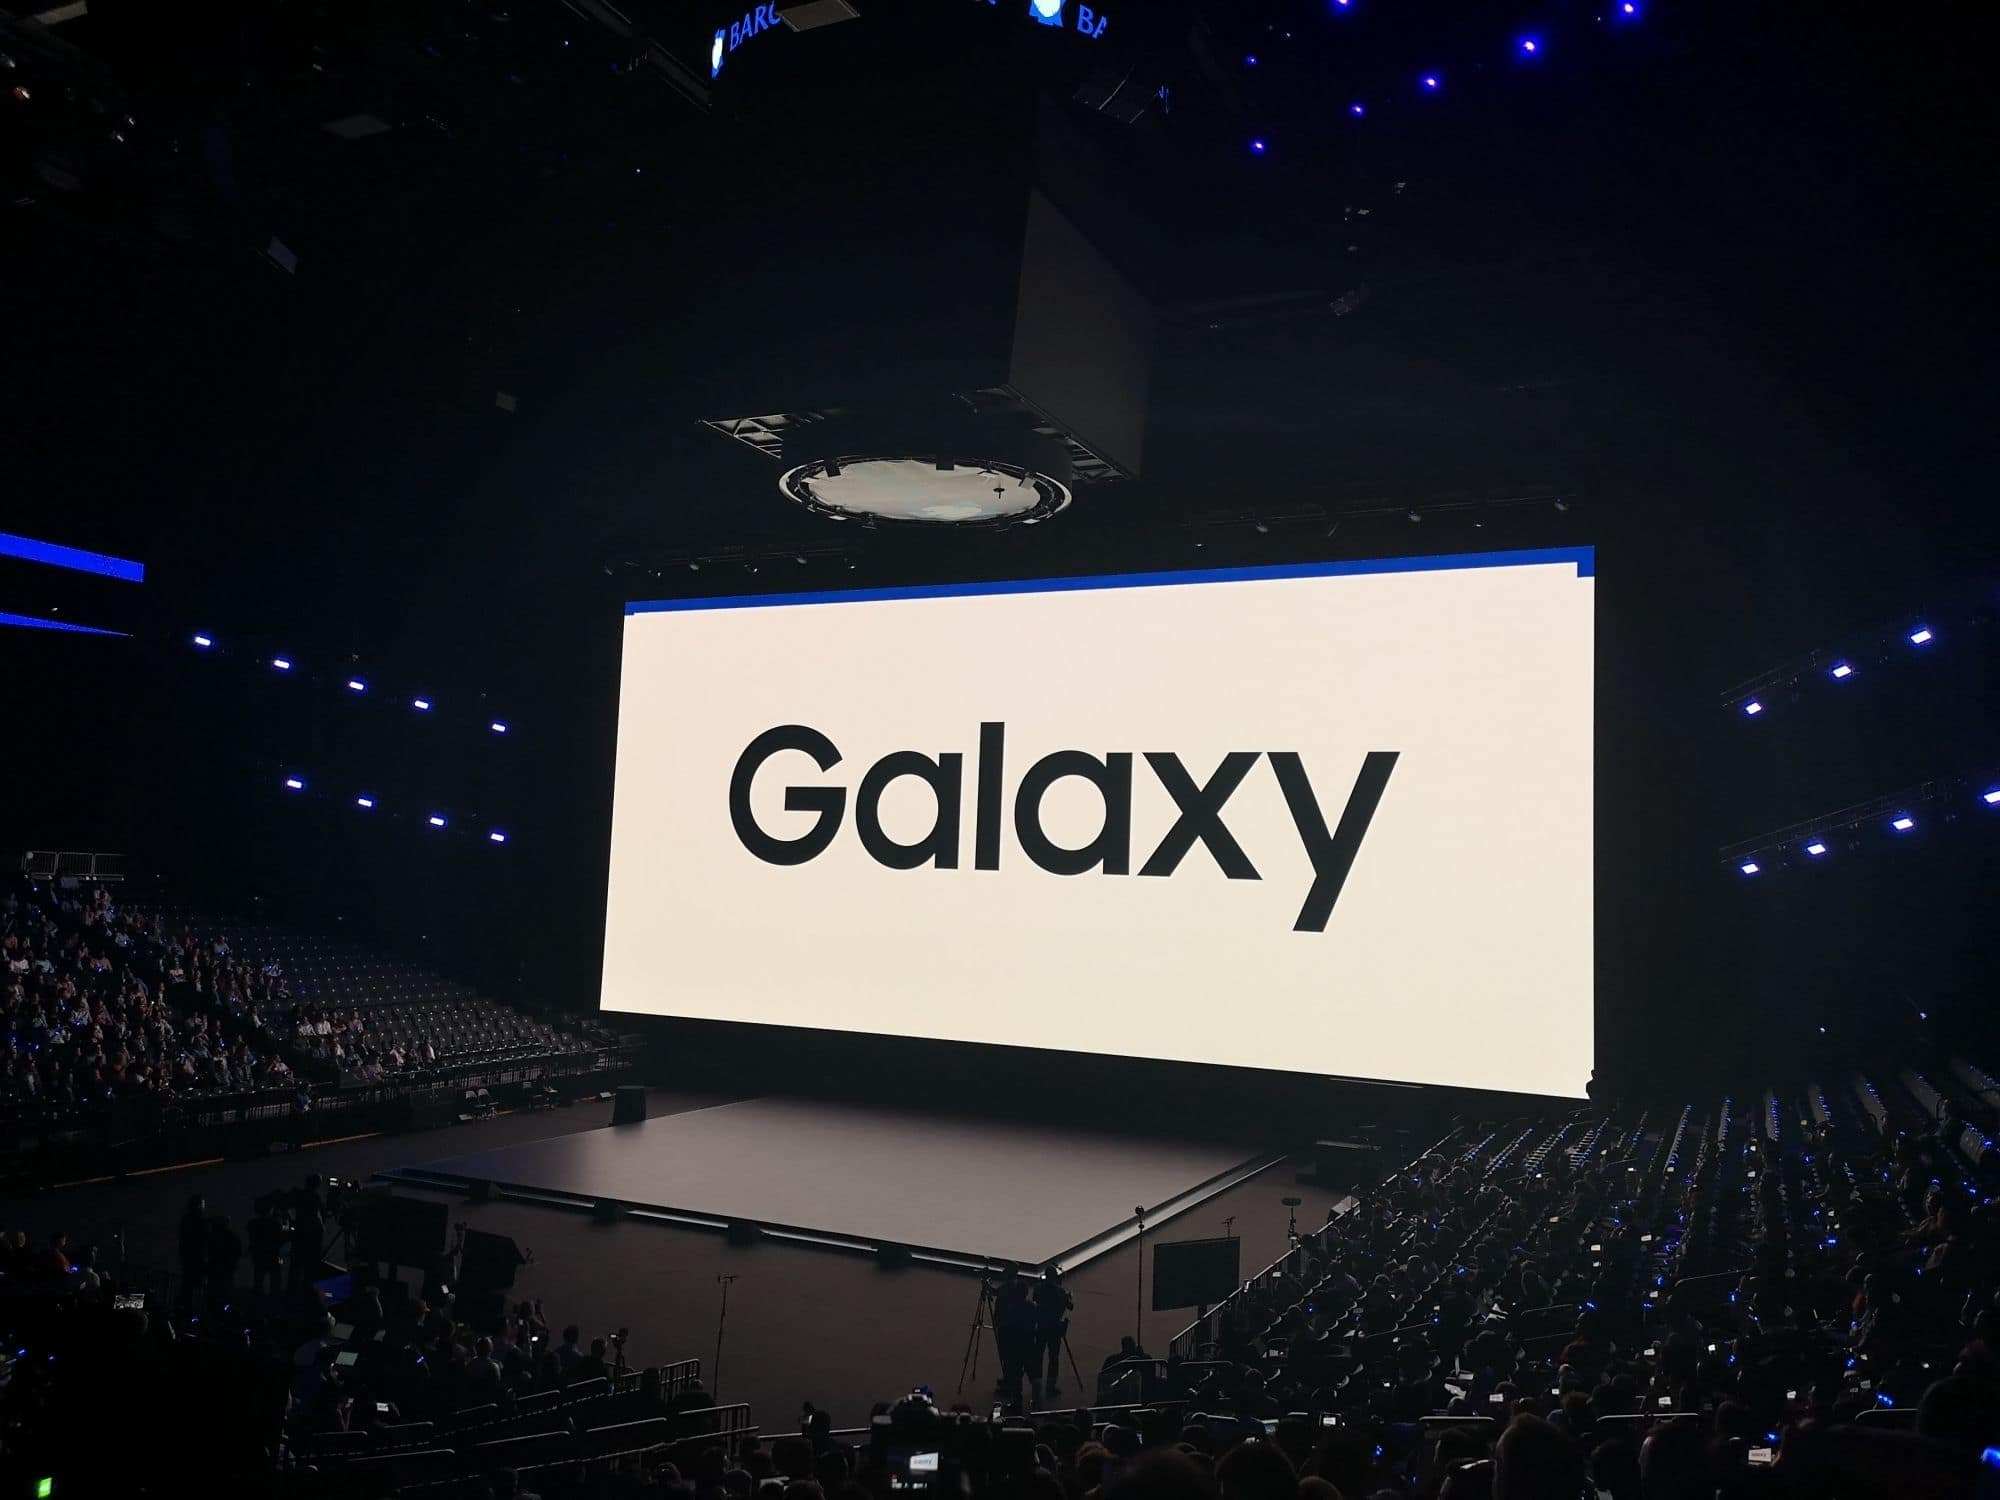 Samsung Likely to Launch 3 Types of Foldable Phones in 2021